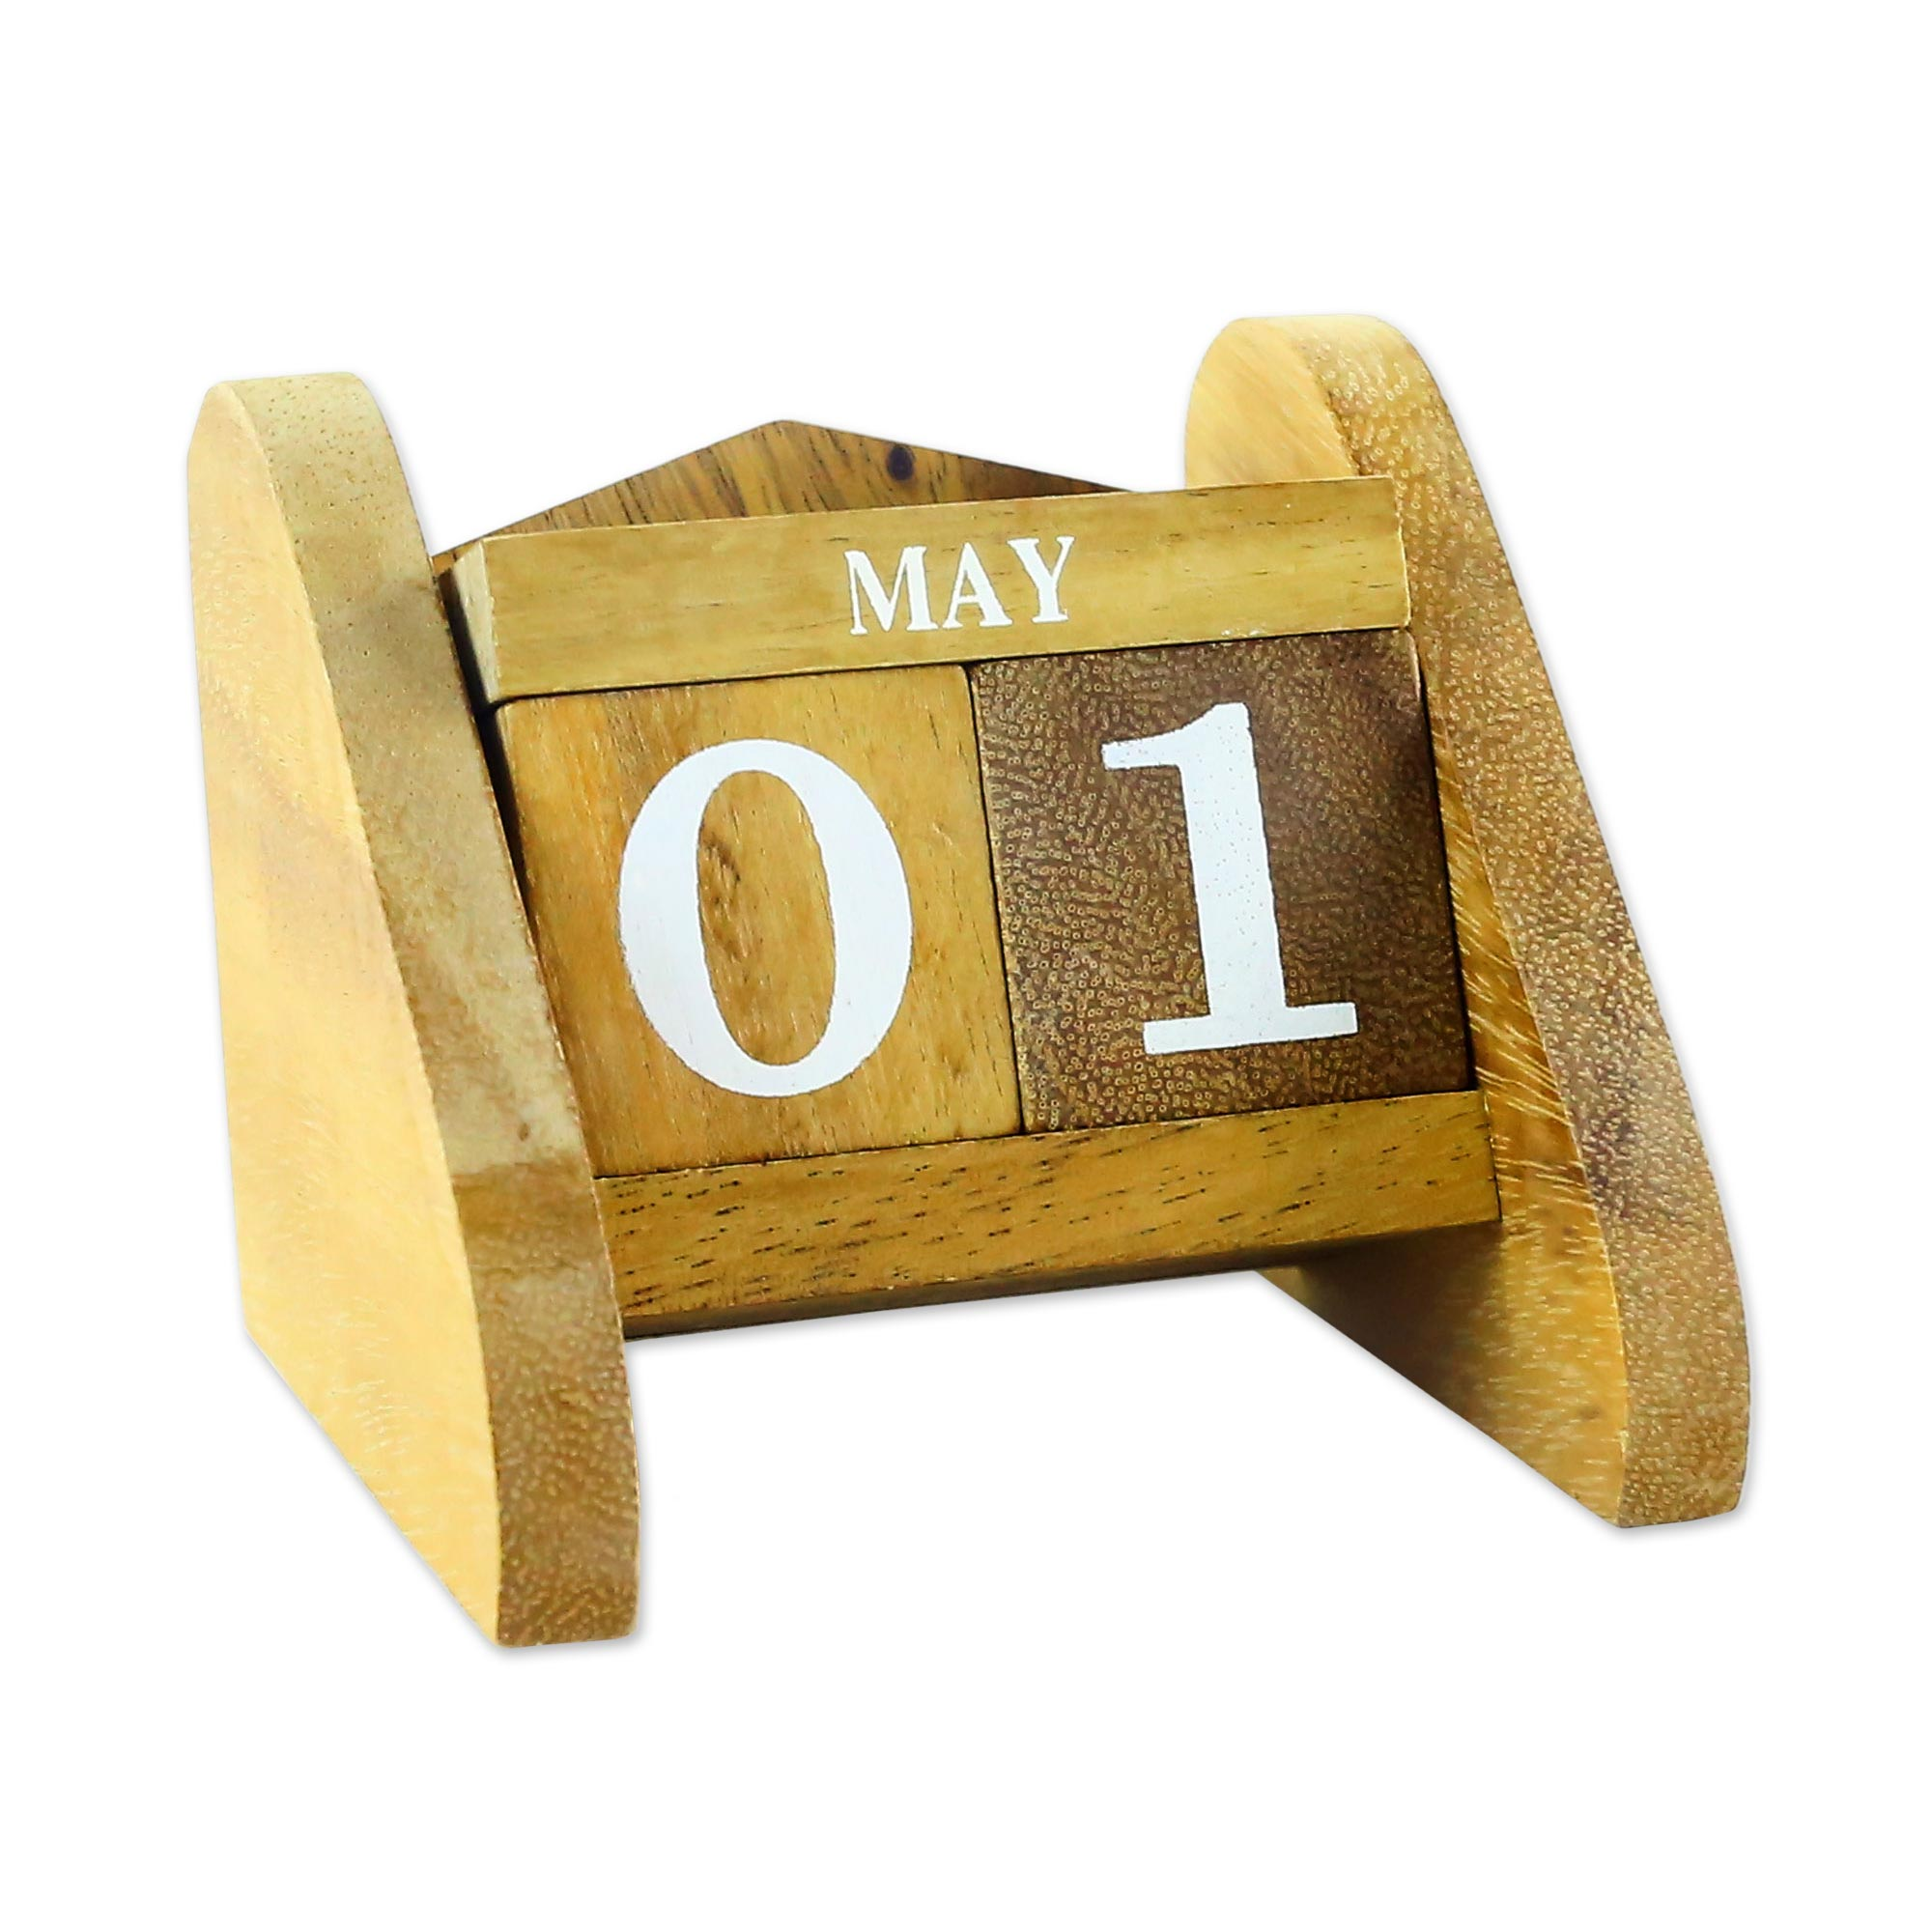 Hand Made Wood Decorative Desk Calendar from Thailand, Time Catcher, home decor unique mother's day gifts